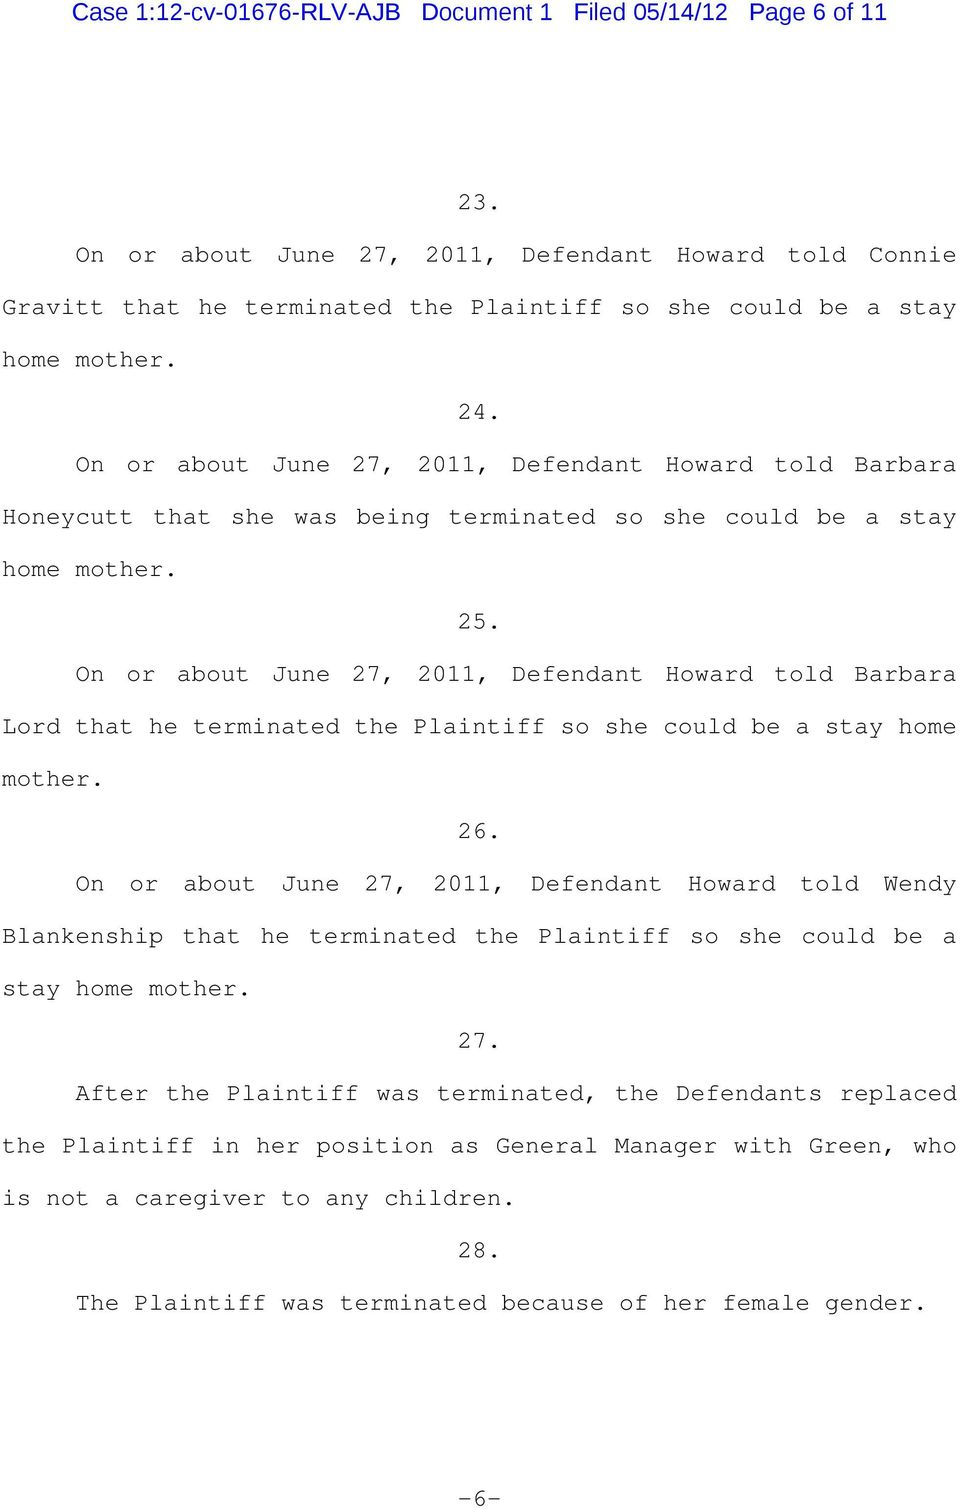 On or about June 27, 2011, Defendant Howard told Barbara Honeycutt that she was being terminated so she could be a stay home mother. 25.